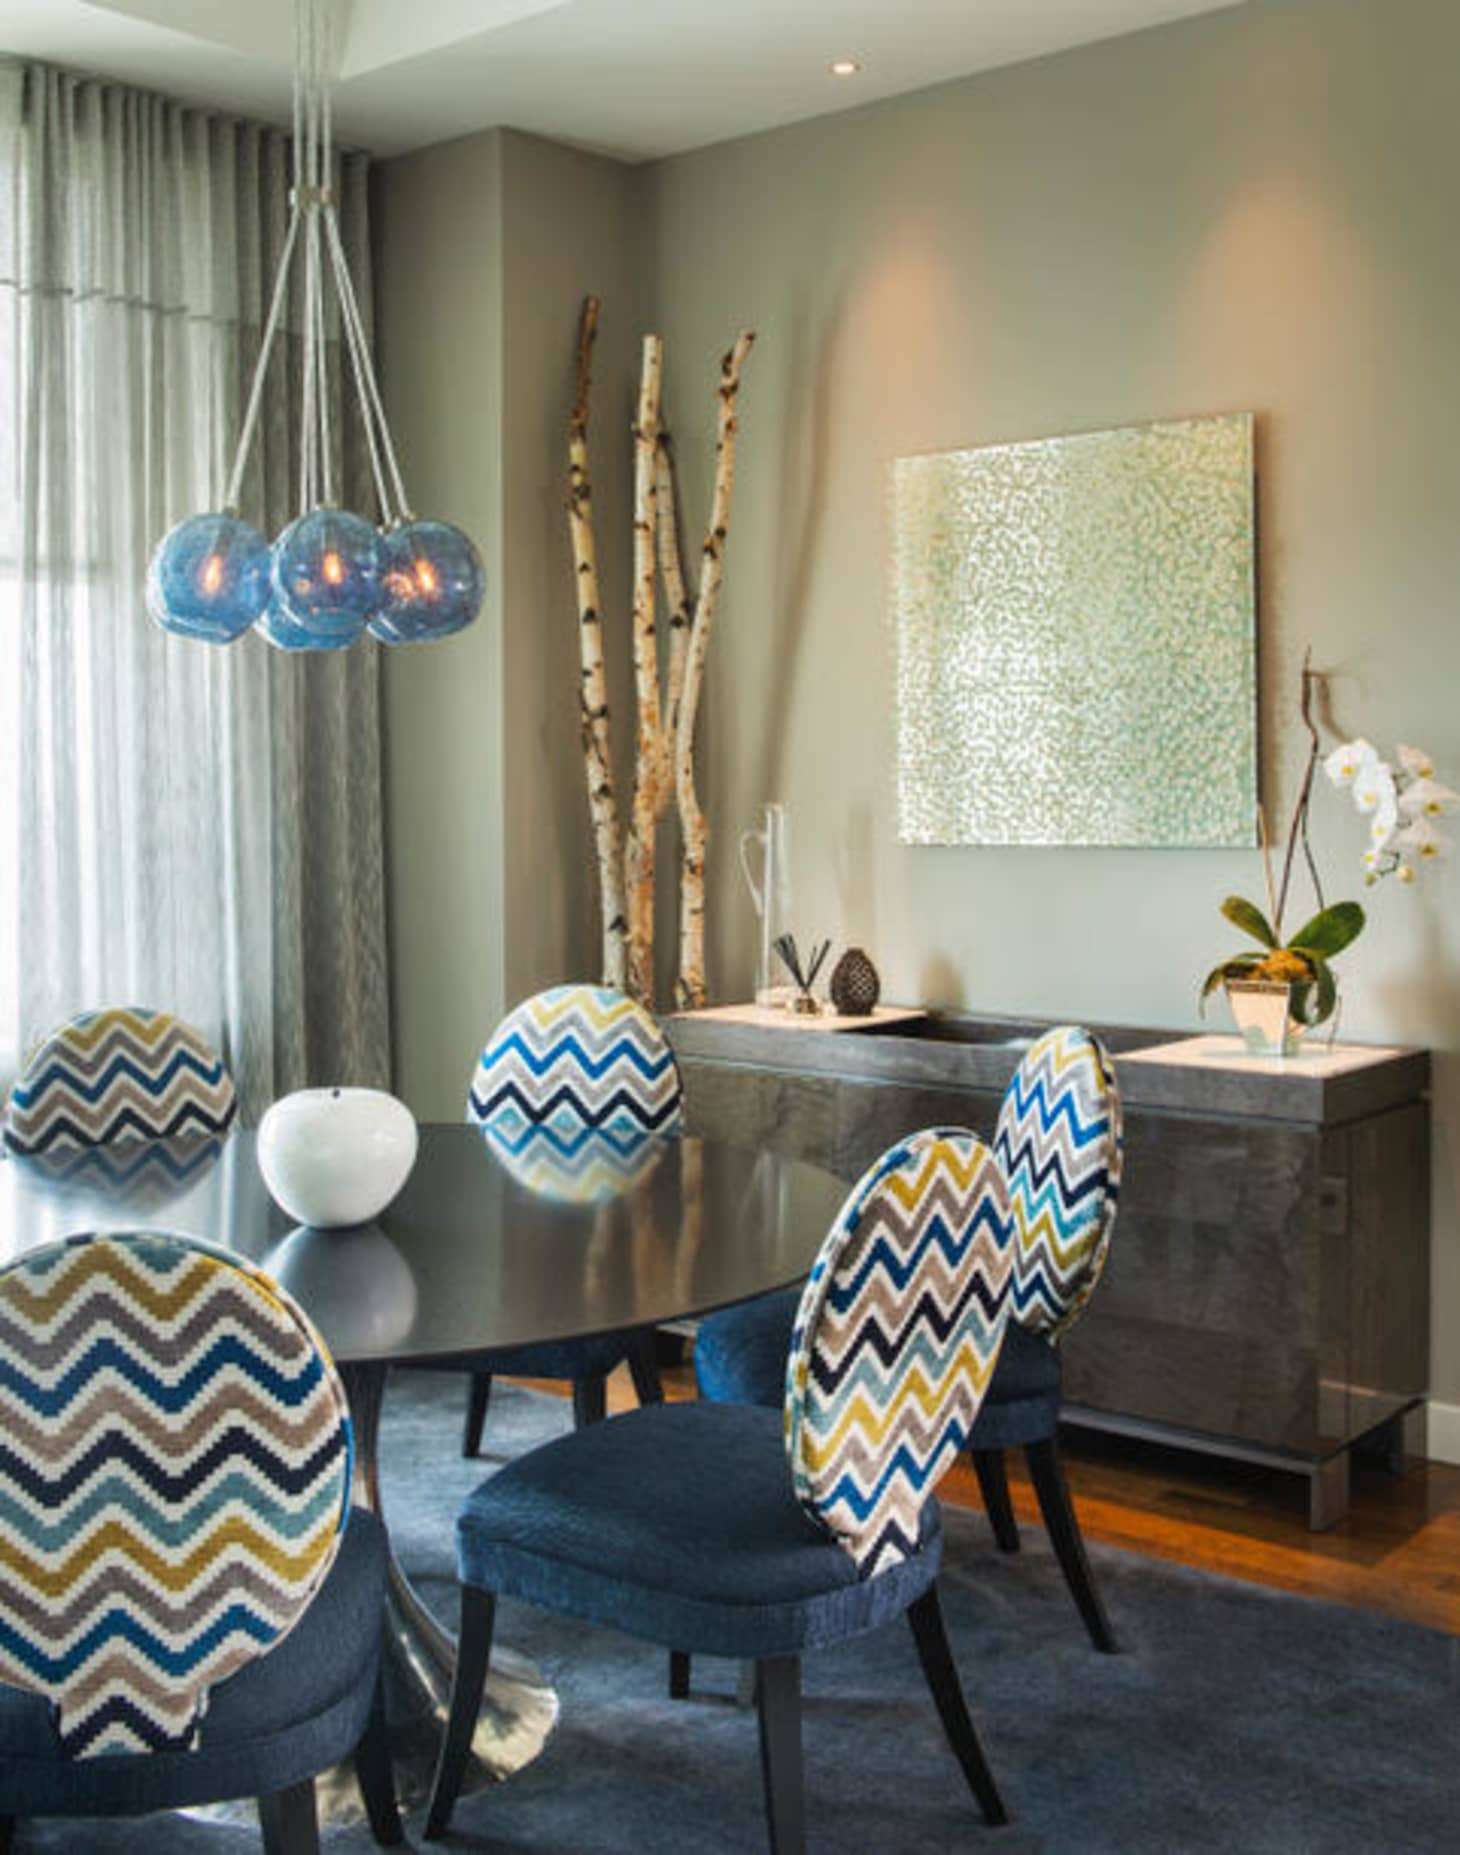 What Not to Do When Decorating a Small Space | Apartment ...